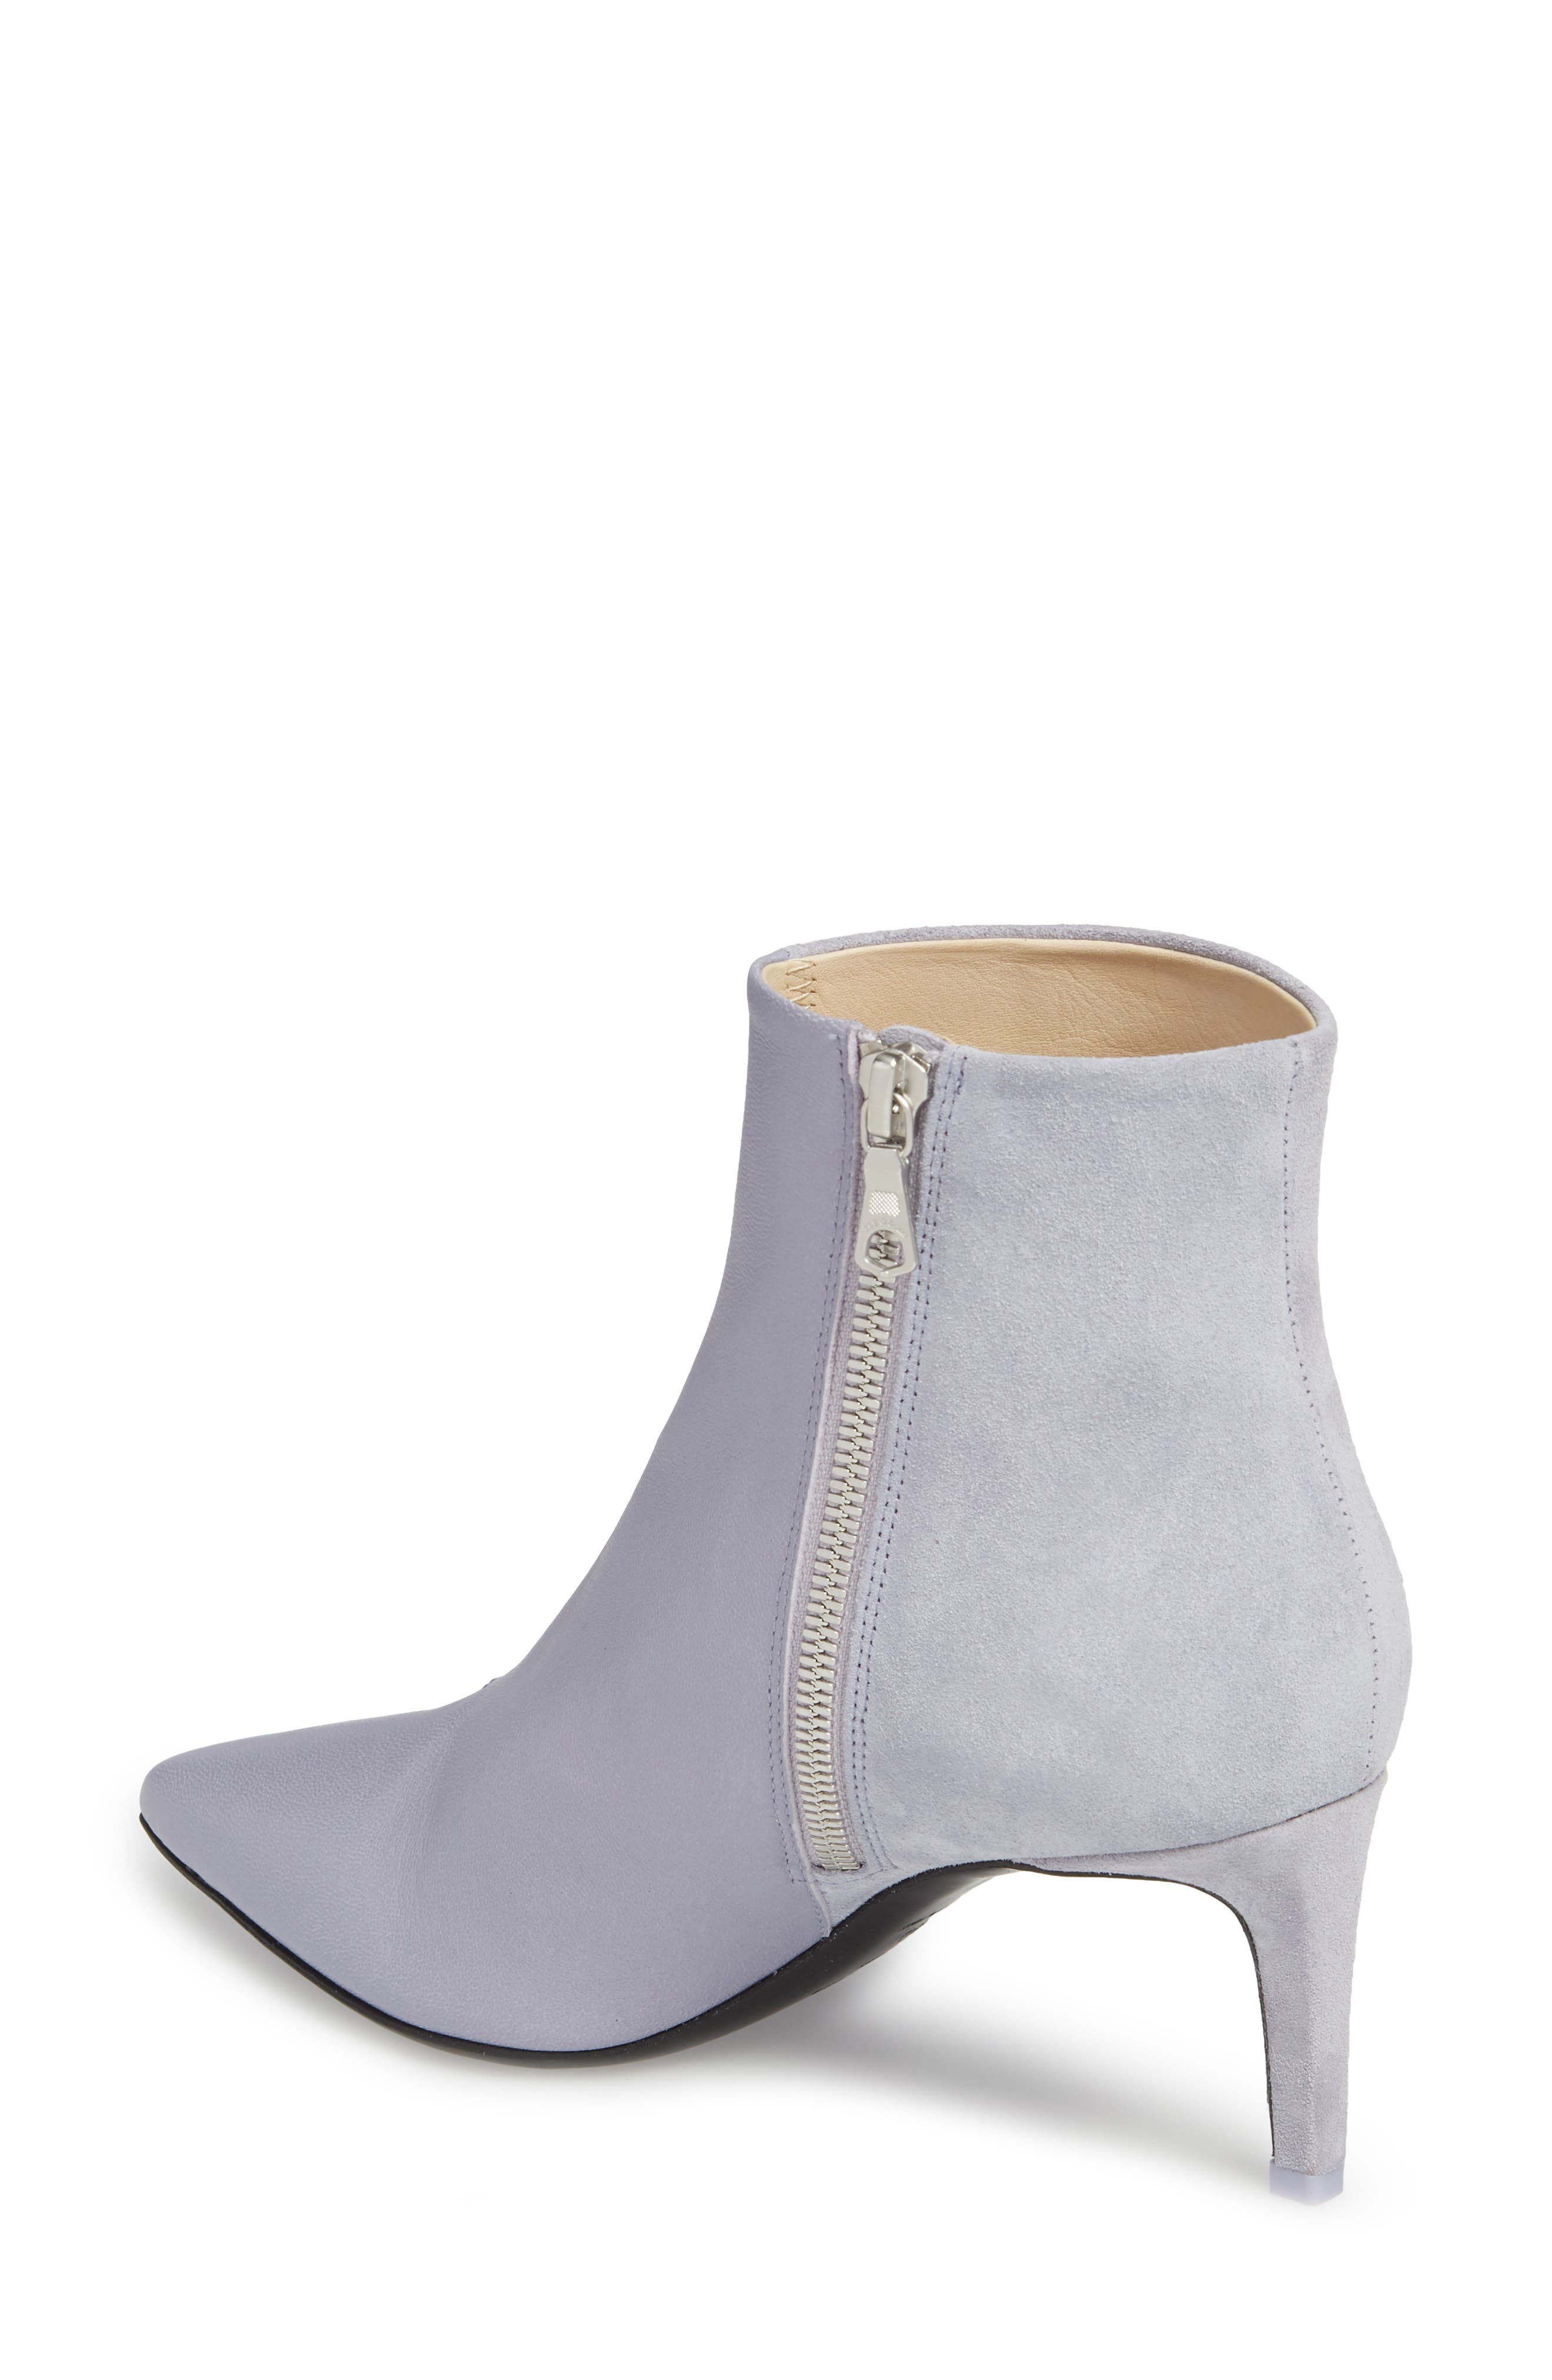 Beha Pointy Toe Bootie,                             Alternate thumbnail 2, color,                             LILAC COMBO